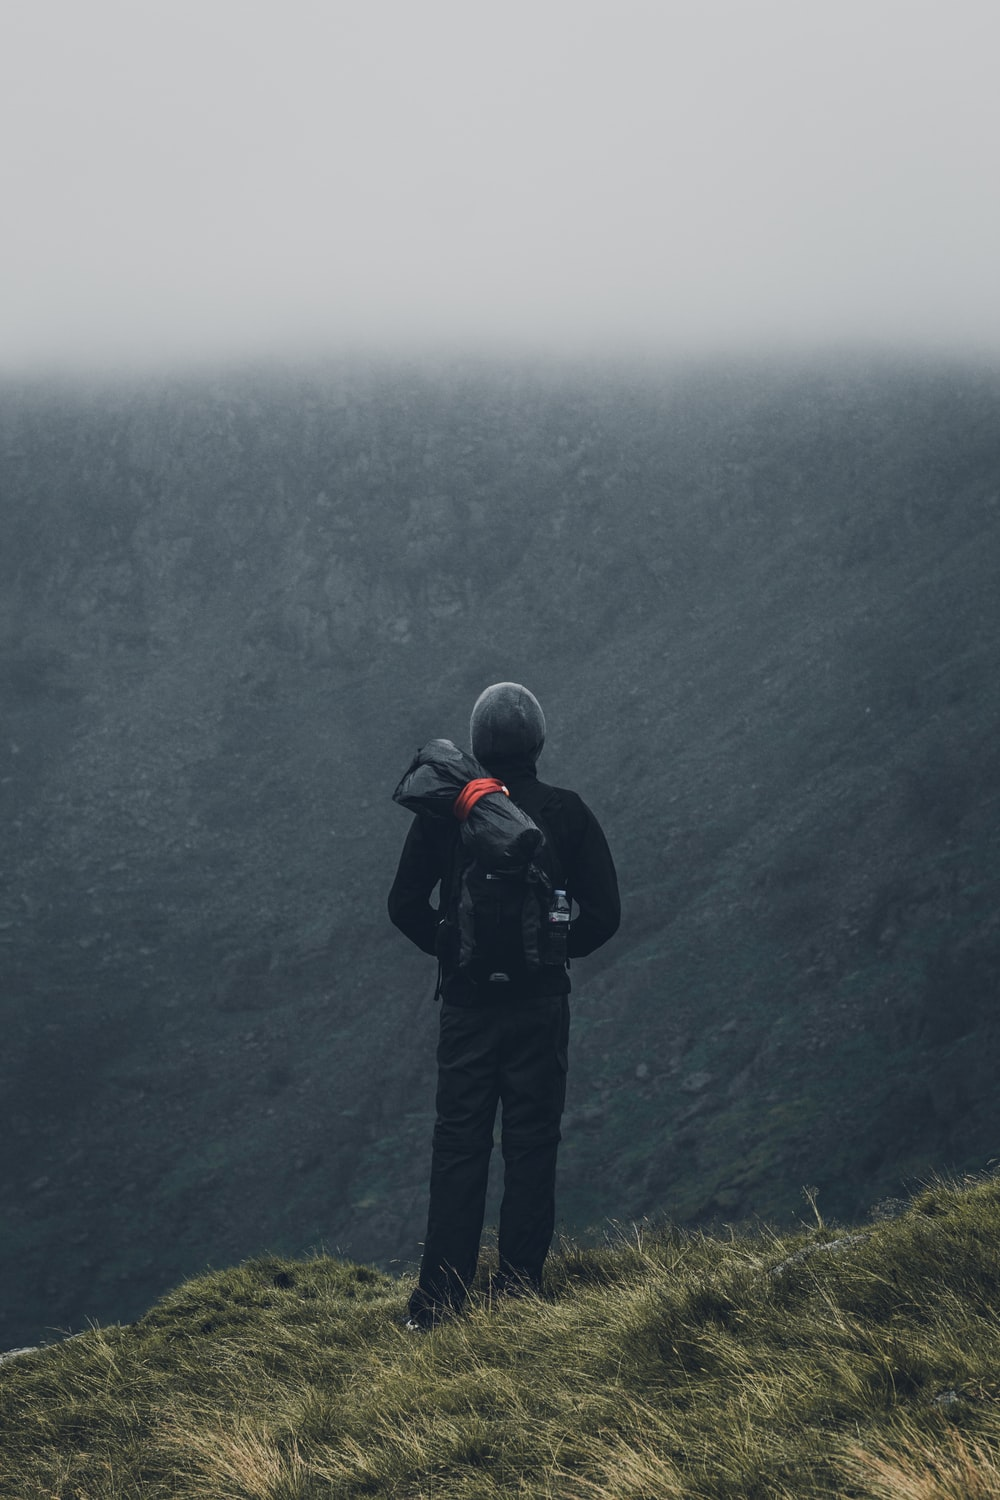 man in black jacket and black pants standing on cliff